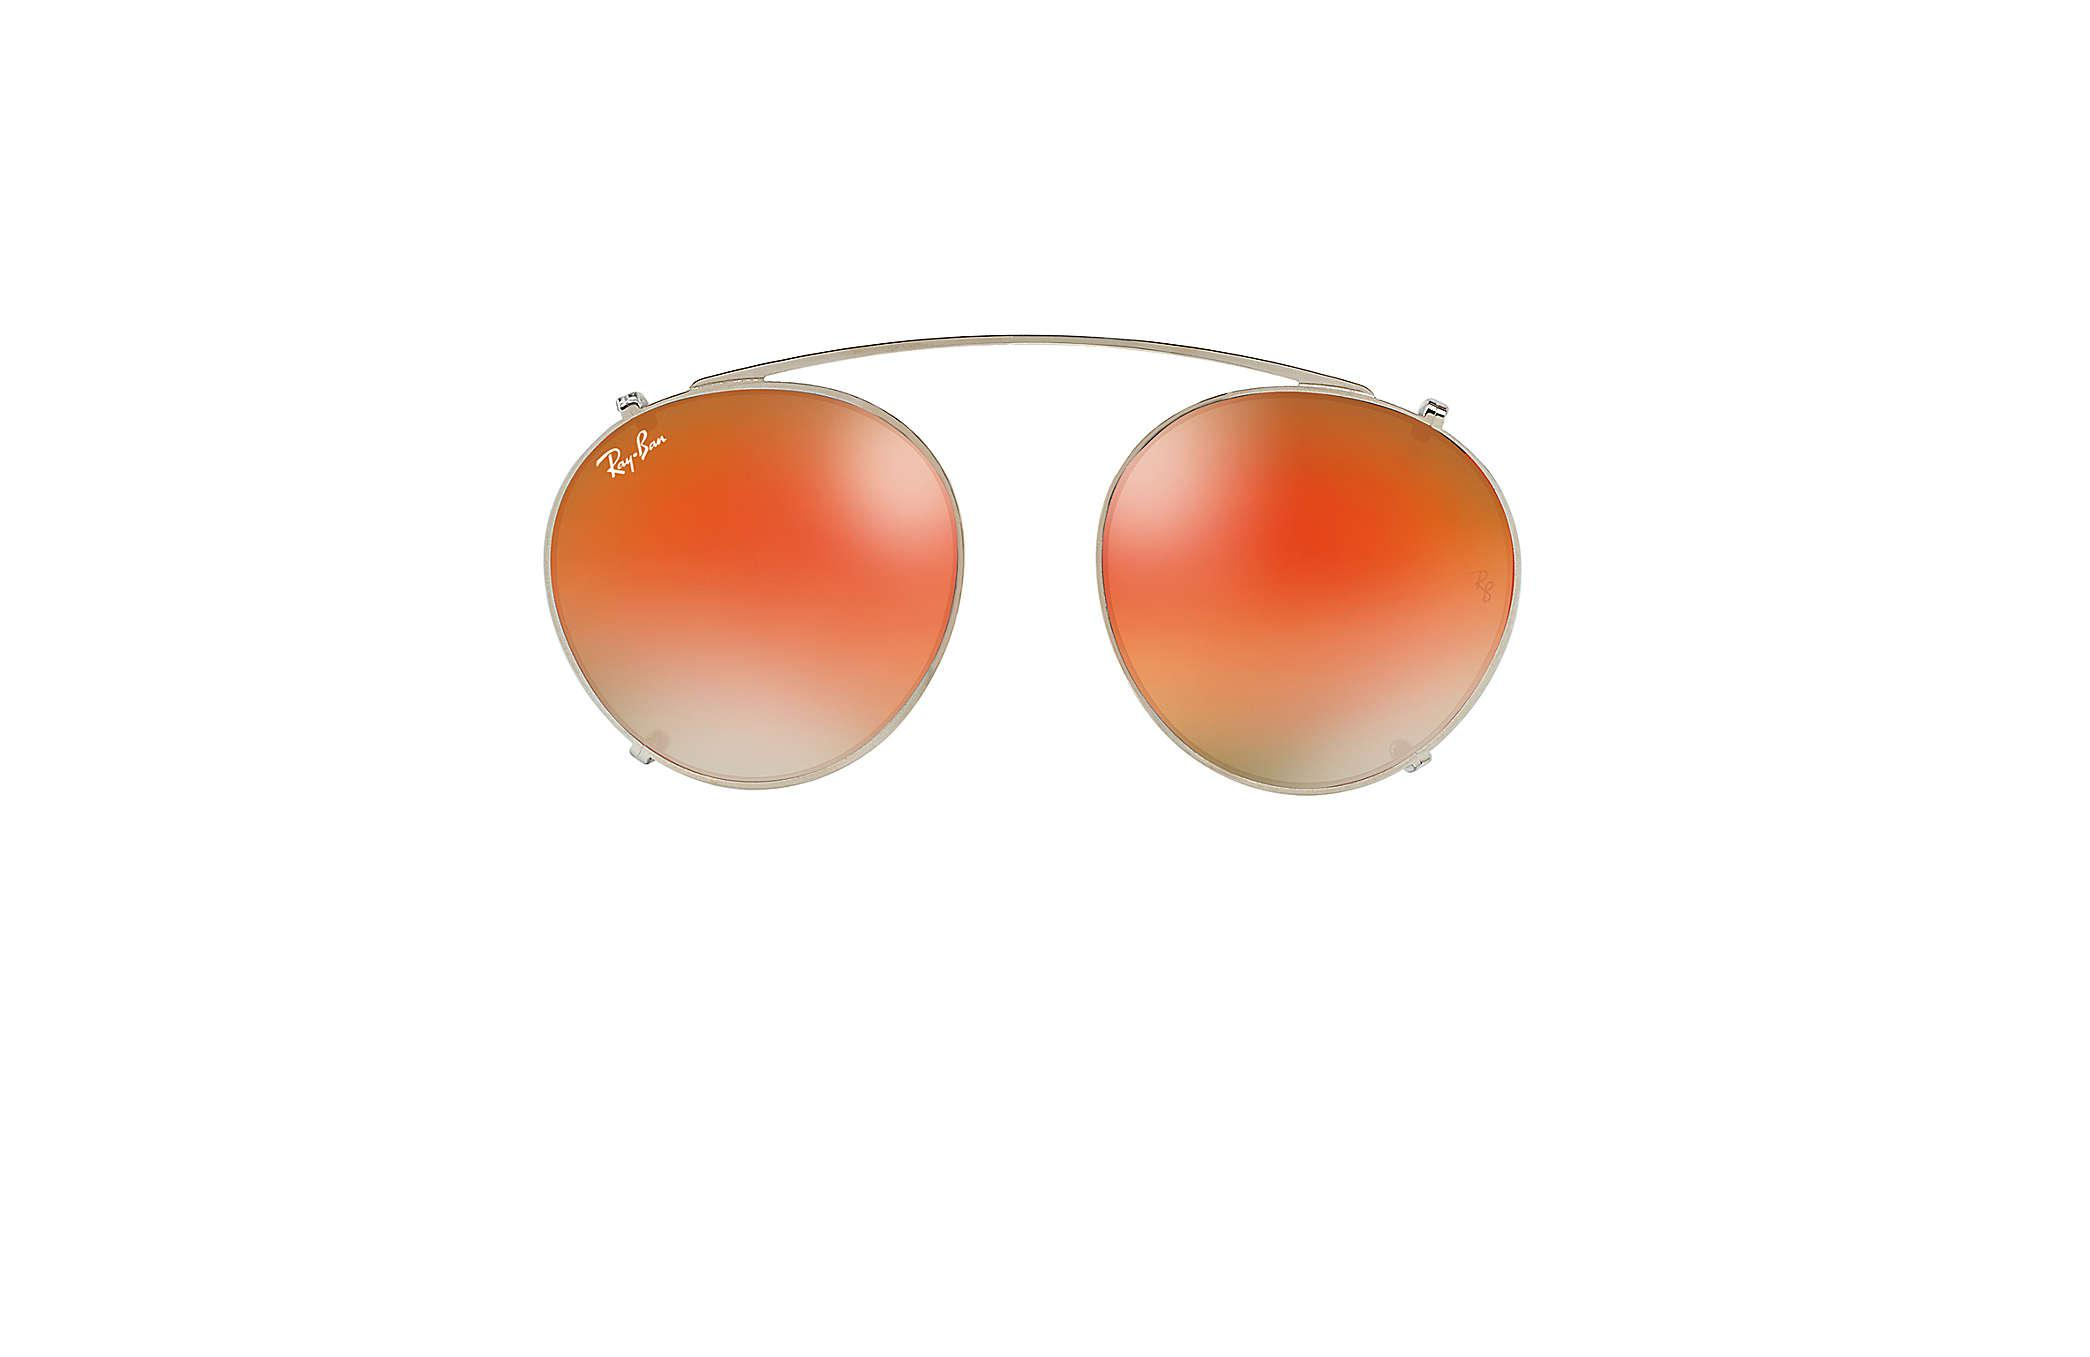 Lyst - Ray-Ban Round Fleck Clip-on in Orange for Men 89100bd66e